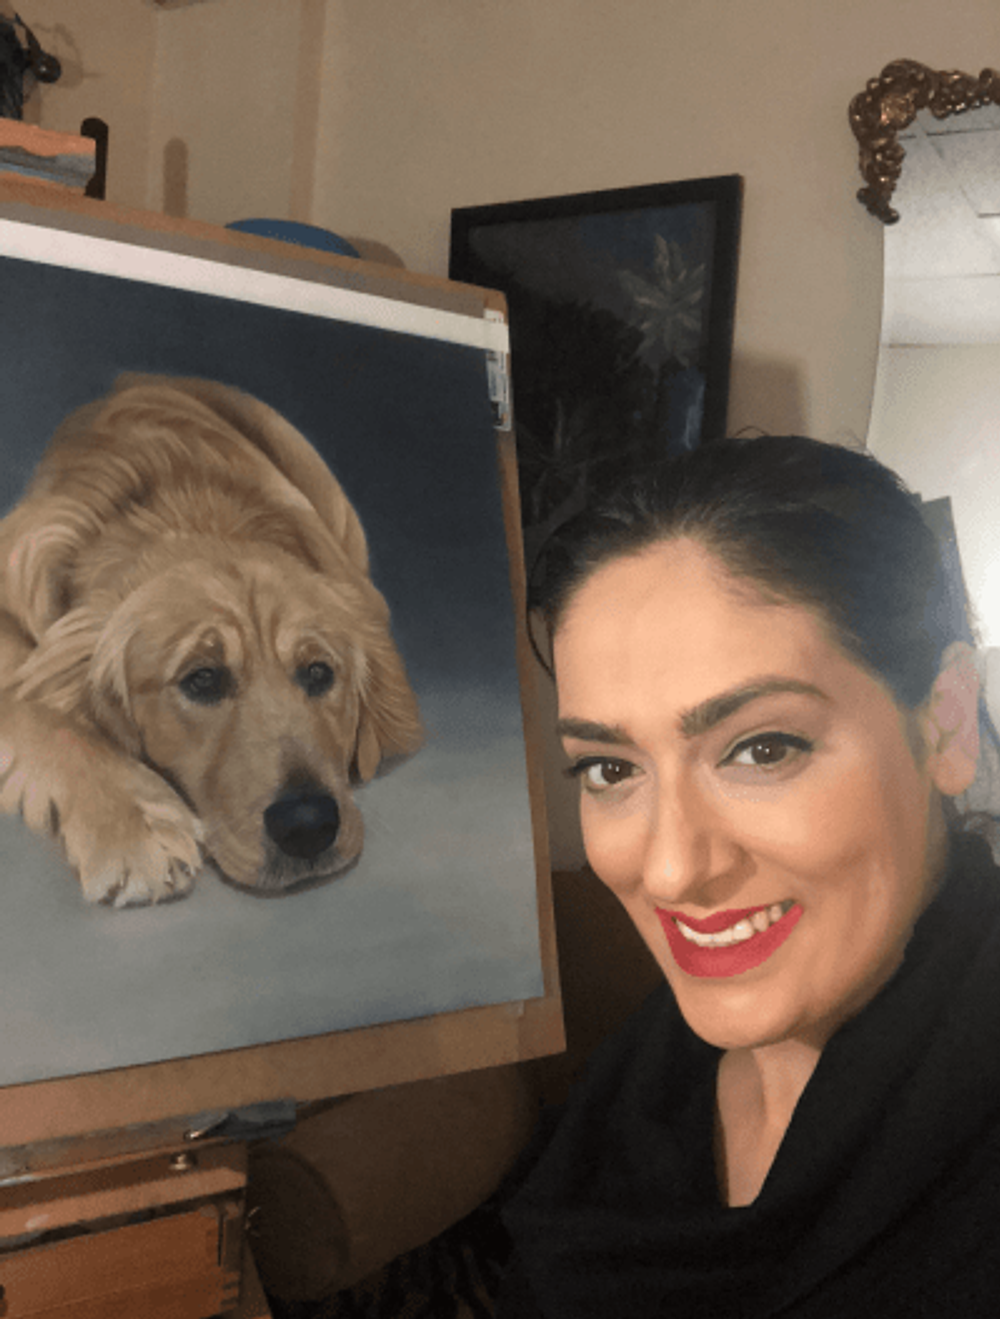 With one of the many pet paintings I've done since moving into my new apartment.